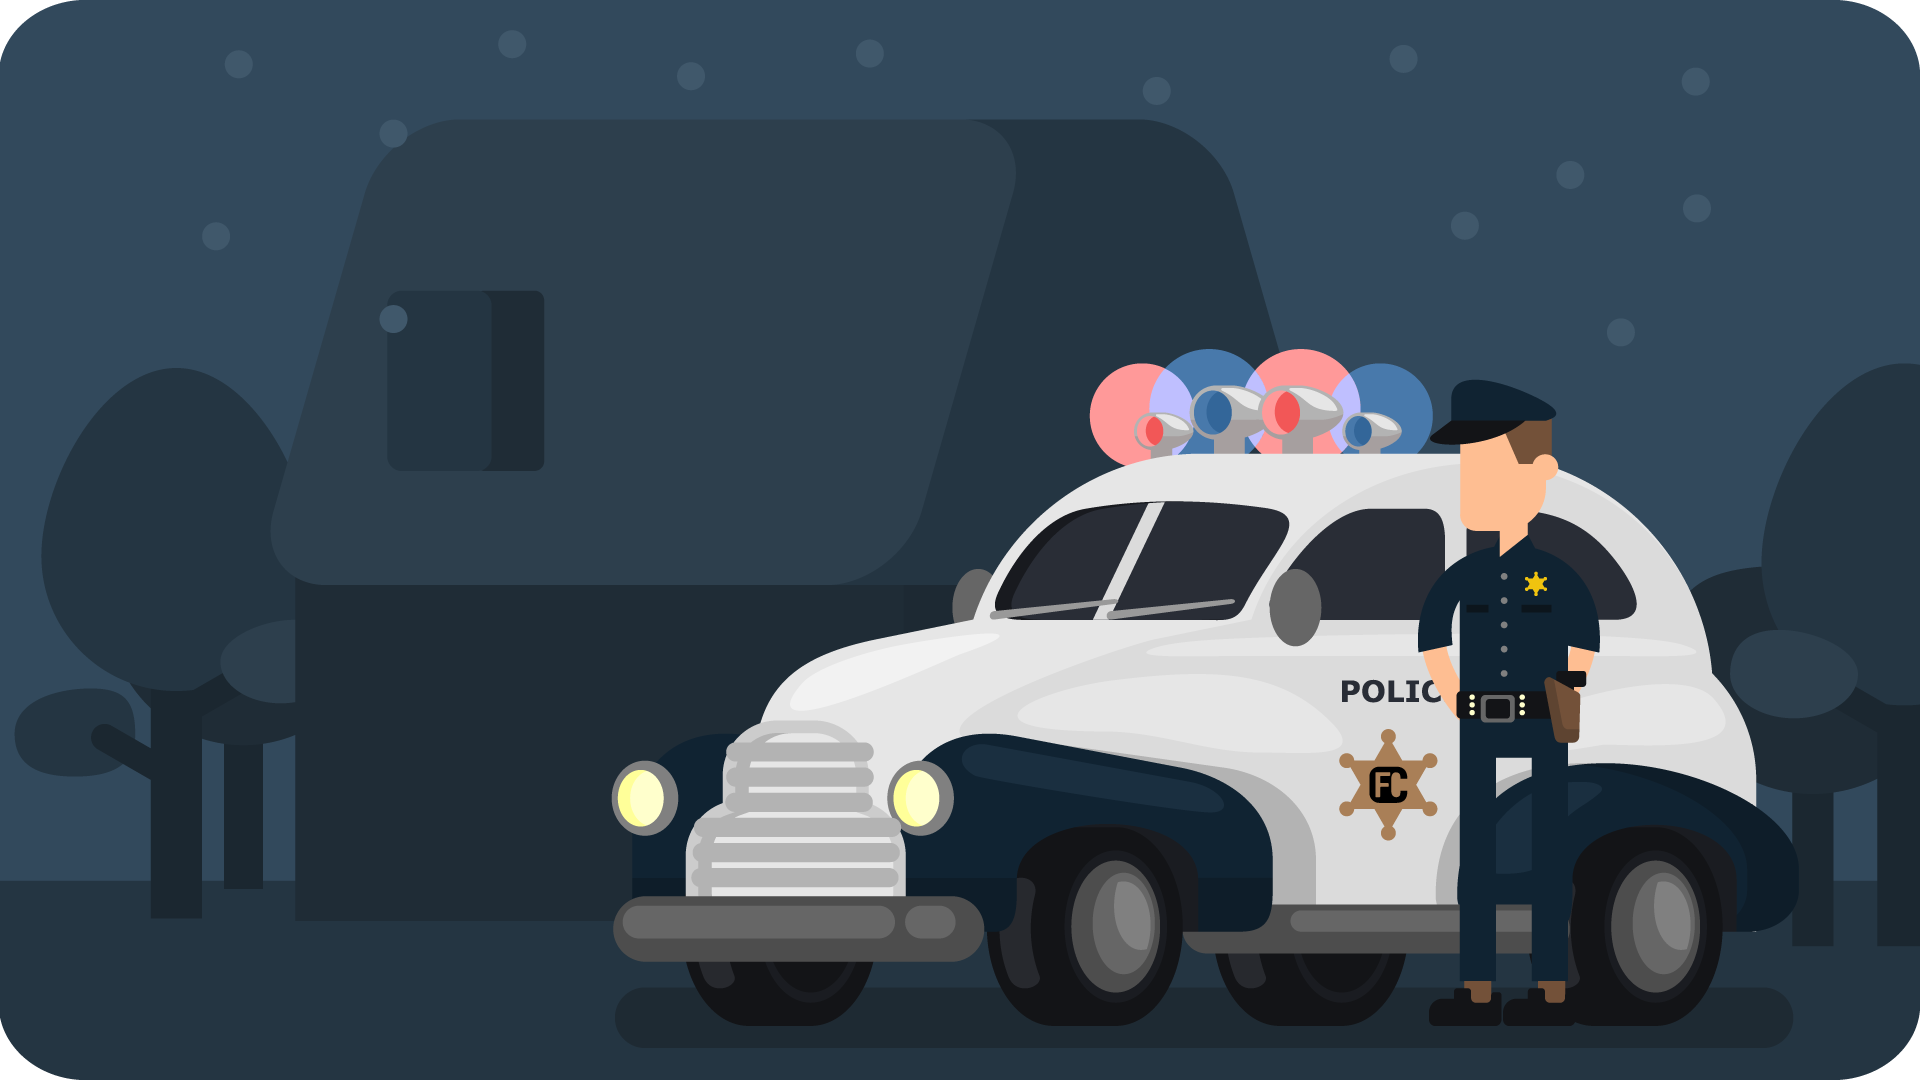 Fllcasts-Police-Light-Car-With-Police-Officer